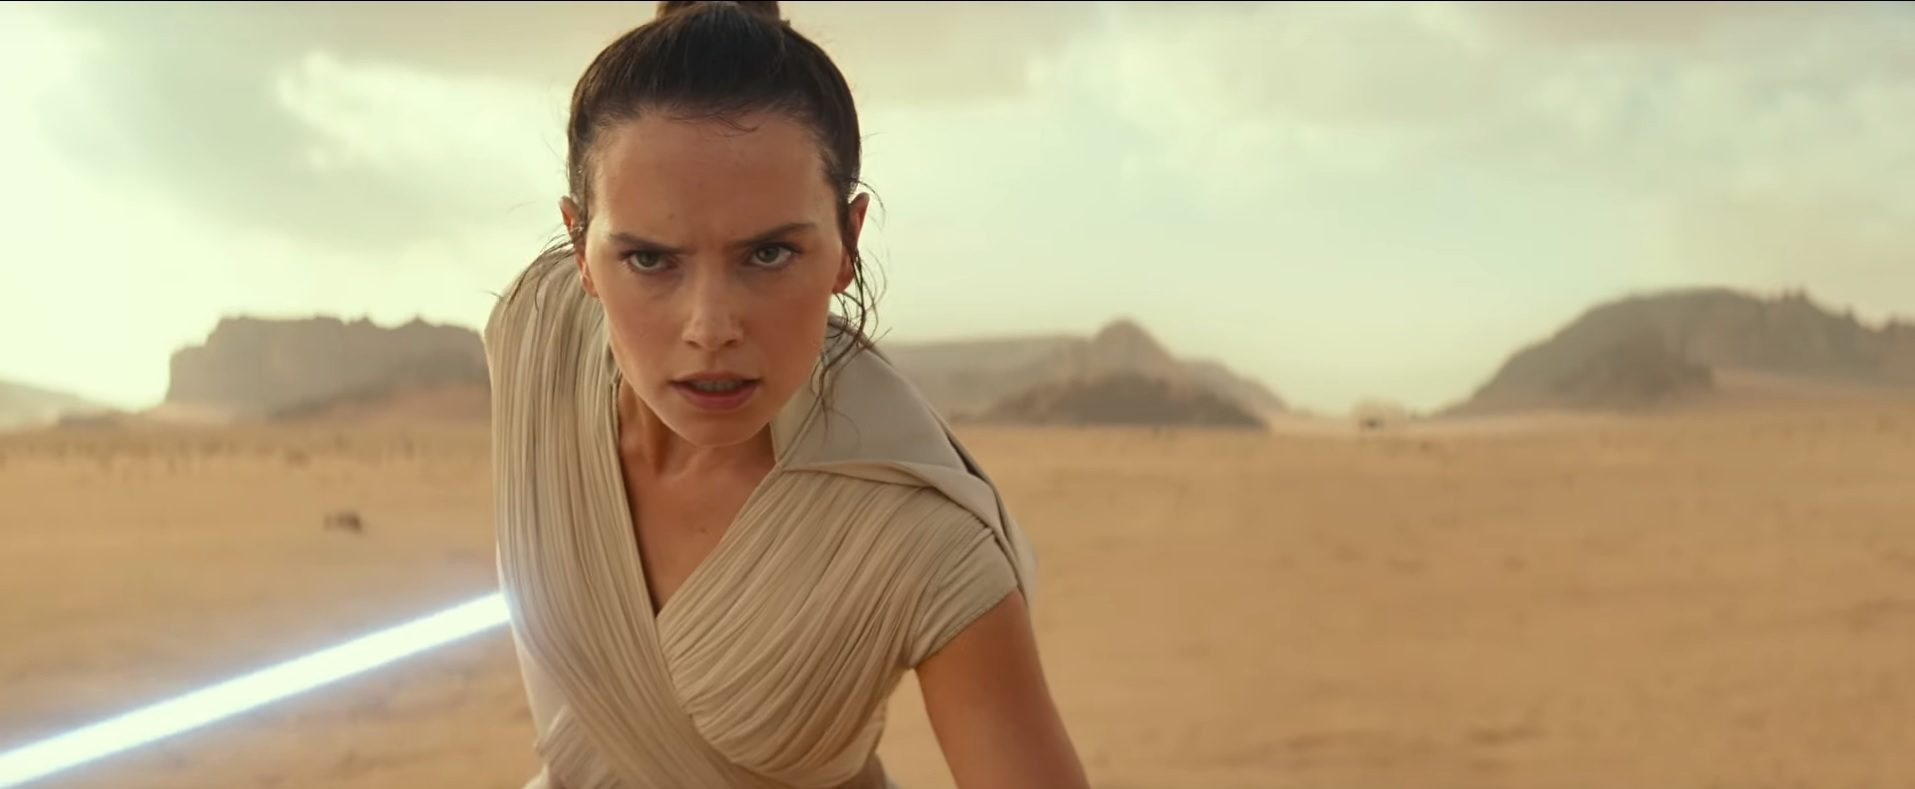 'The Rise of Skywalker' – 4 Theories on What It Could Mean